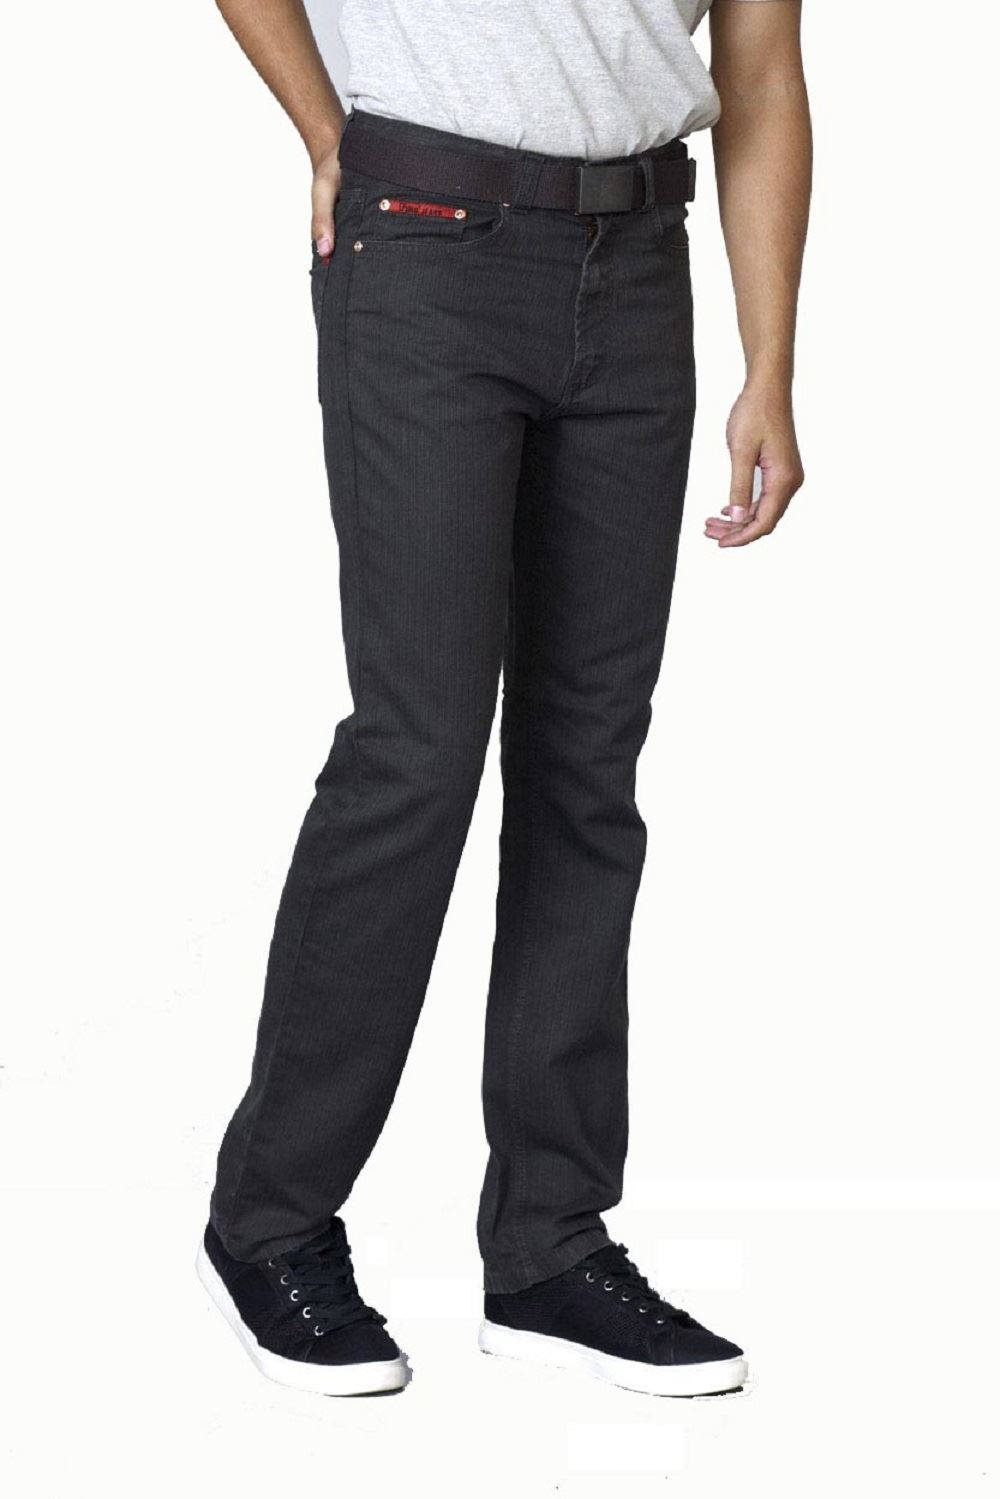 Duke-London-Mens-Big-Size-Bedford-Cord-Enzyme-Washed-Jeans-Canary-in-Charcoal thumbnail 13